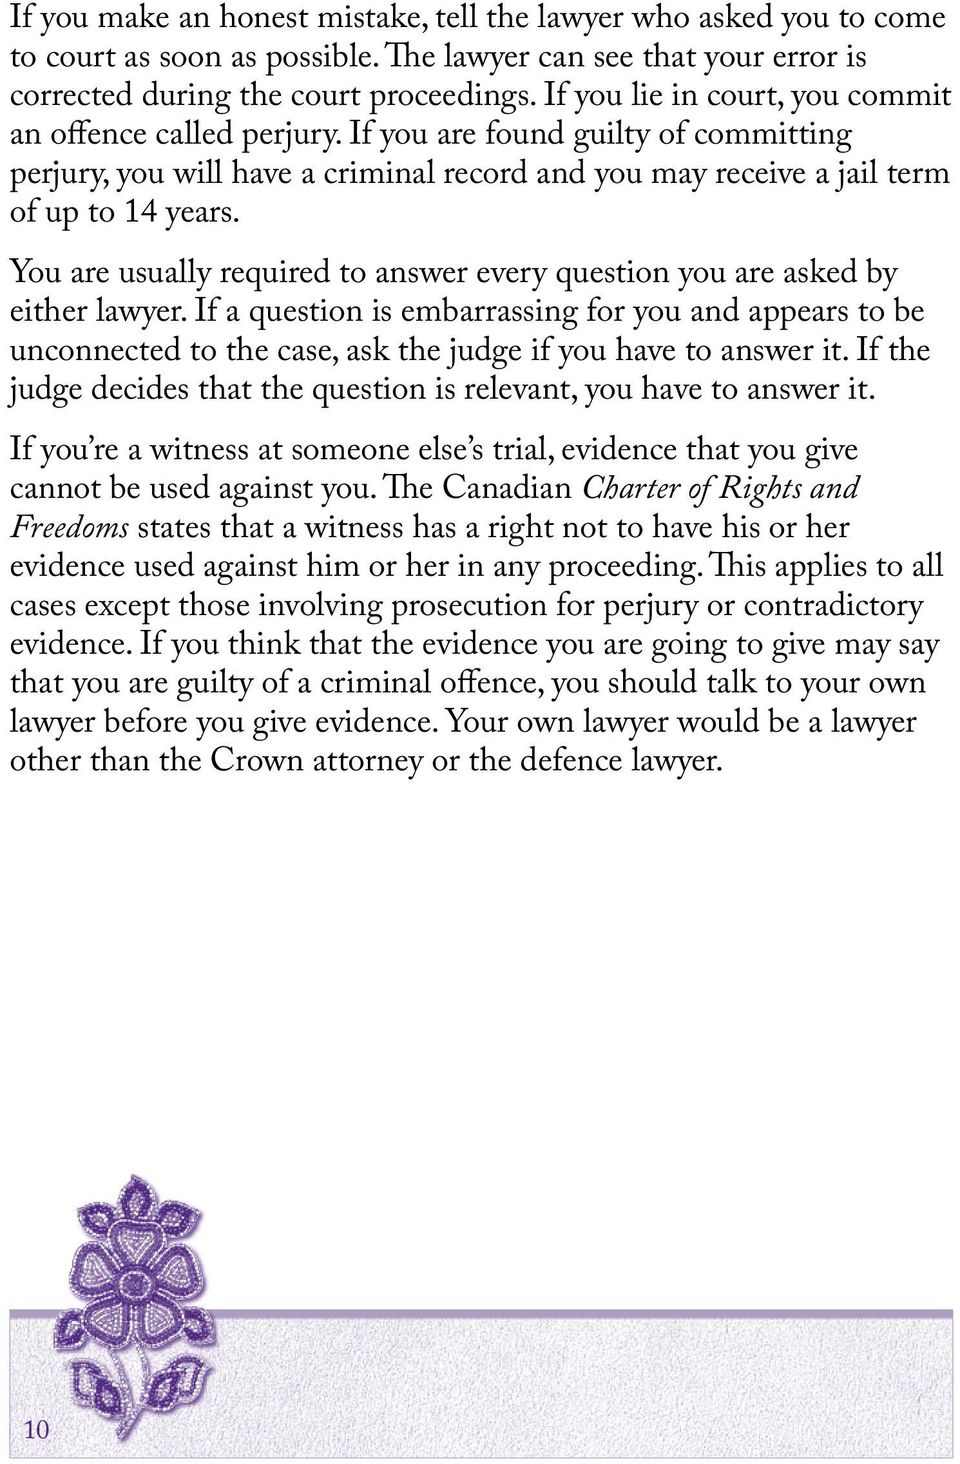 You are usually required to answer every question you are asked by either lawyer.